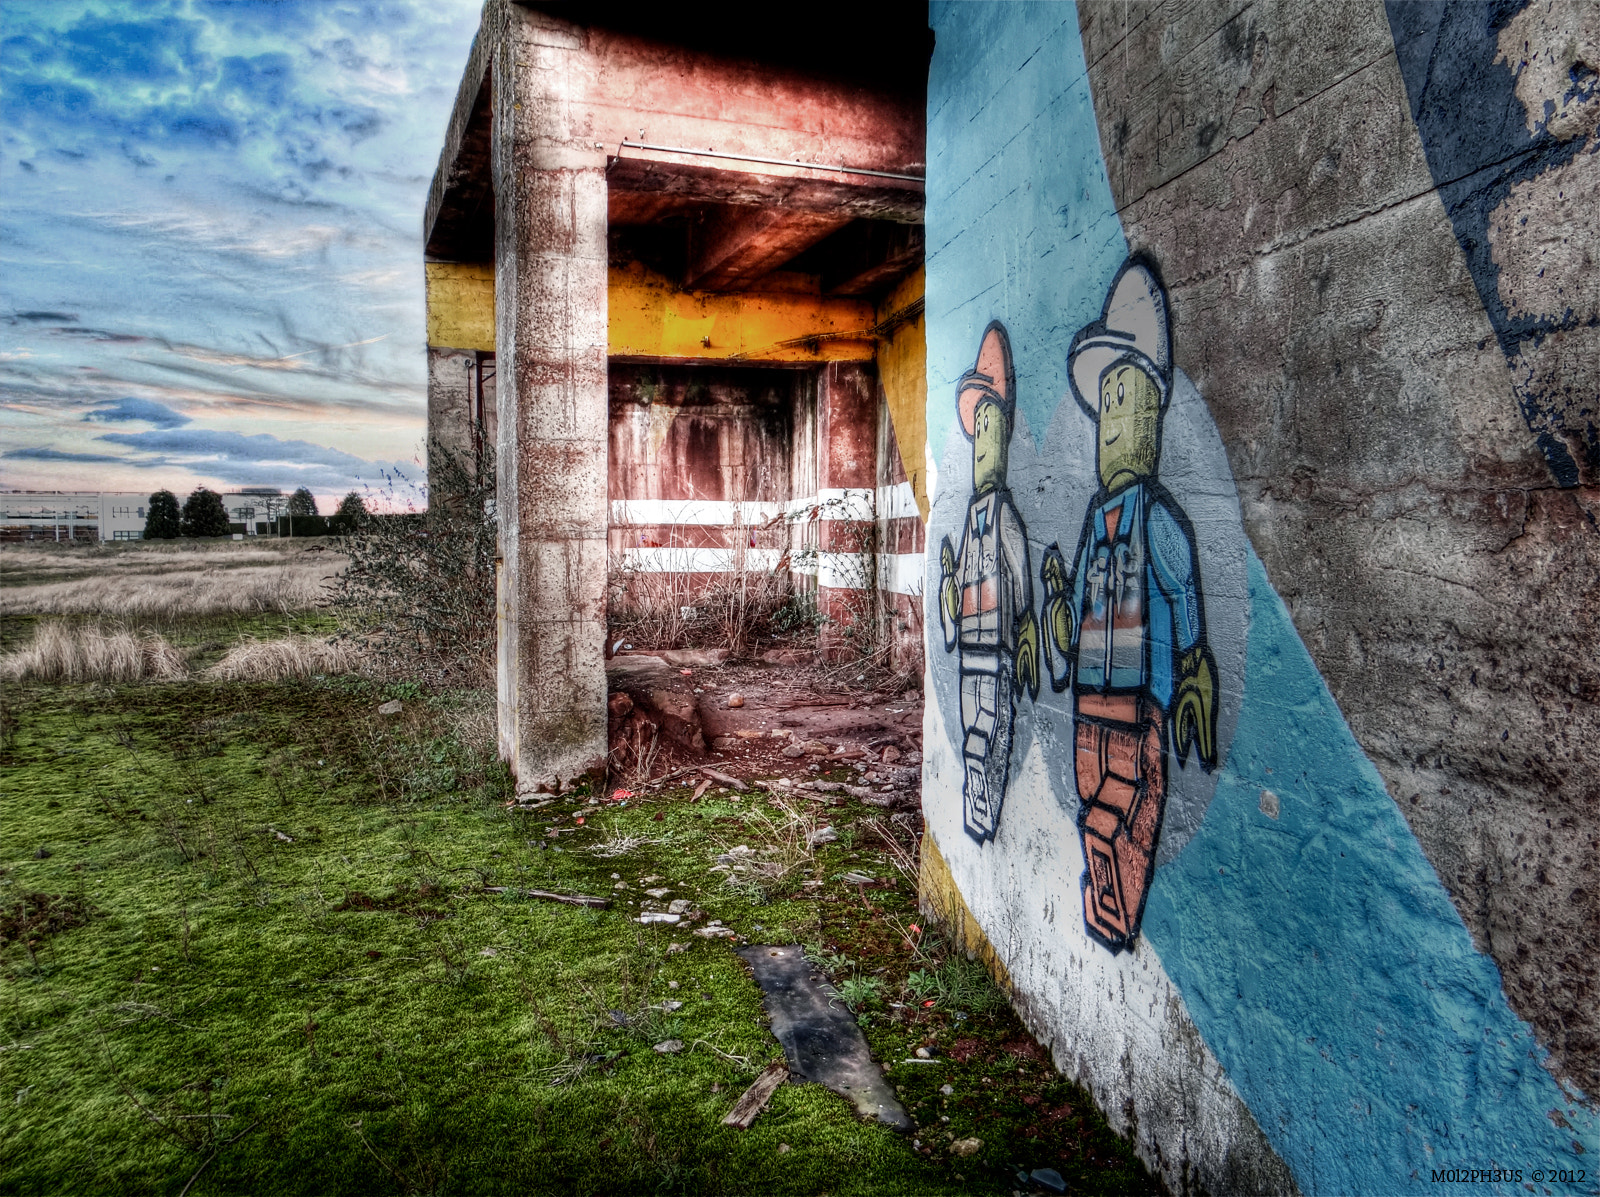 Photograph Graffiti Lego by Ivan Lerosier on 500px